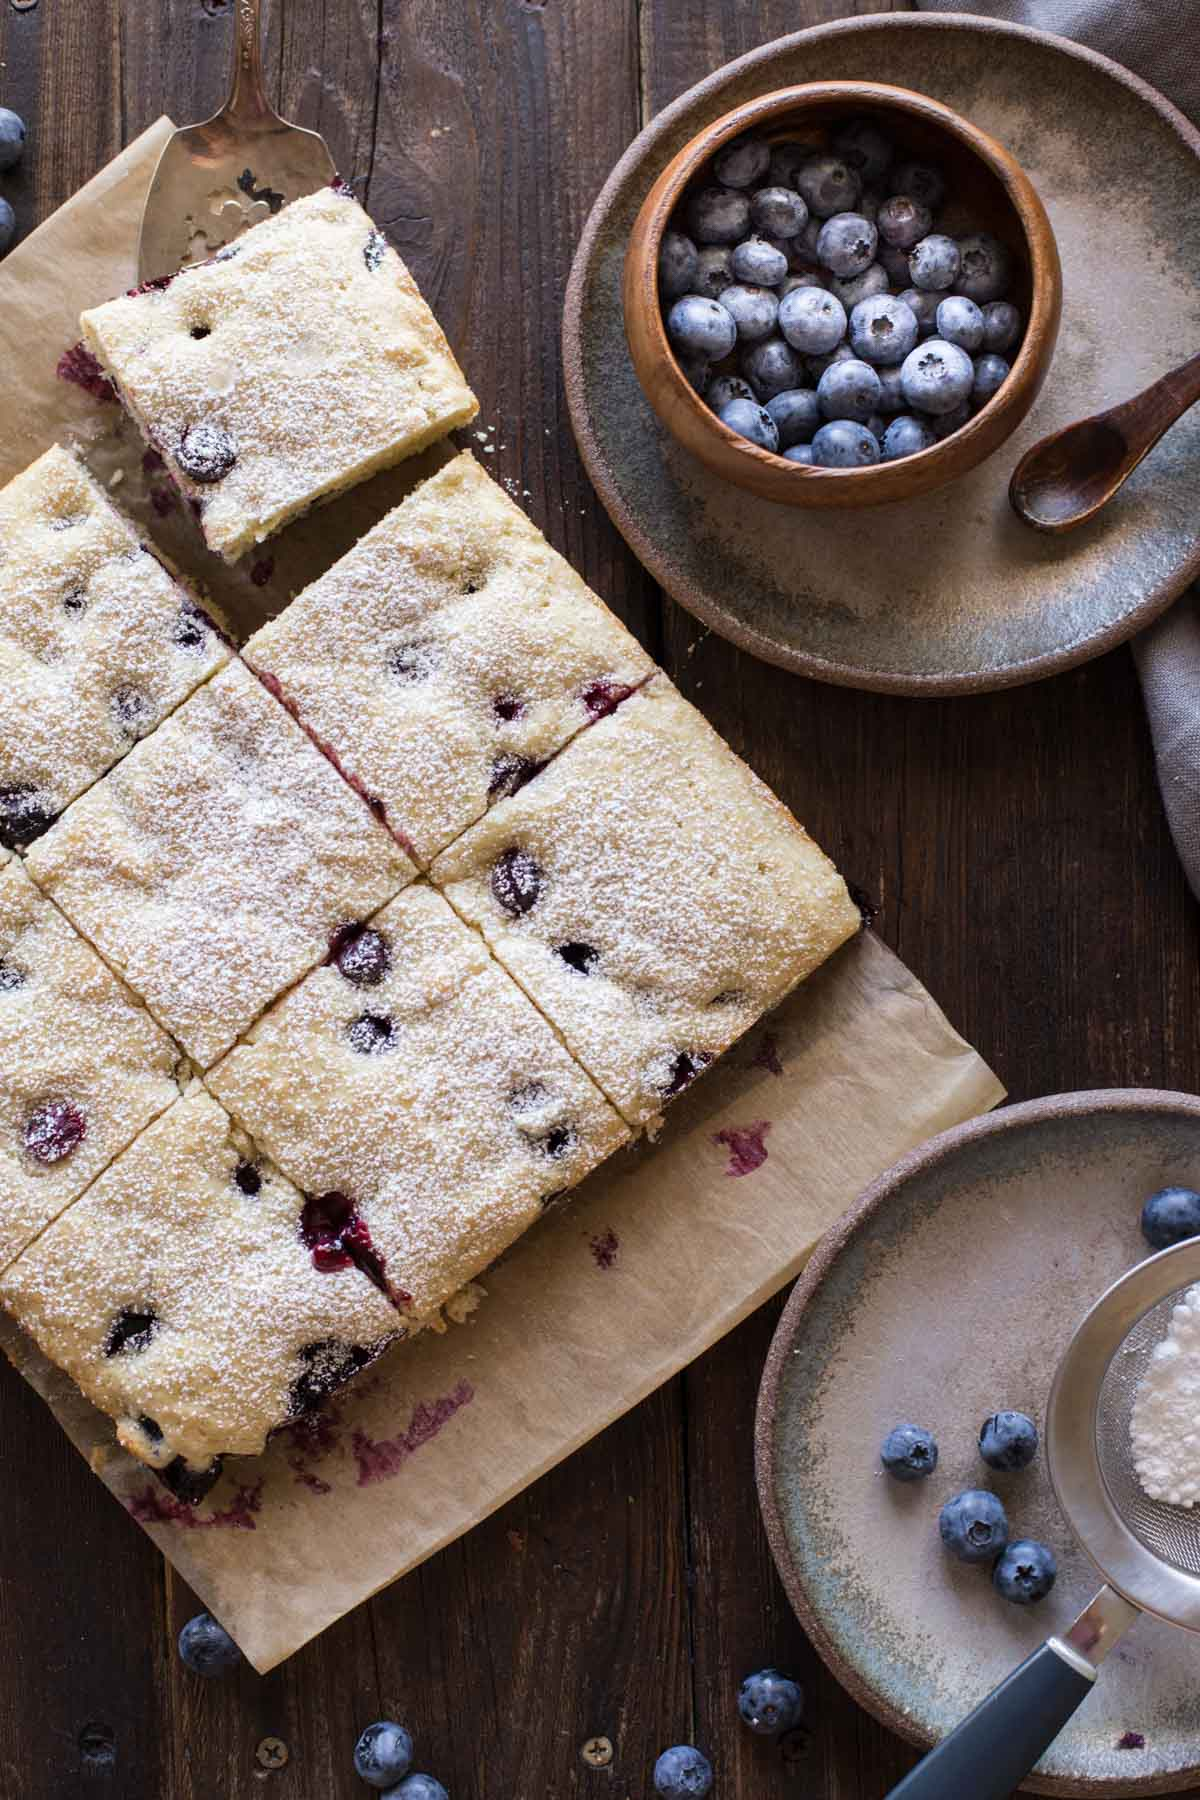 Buttermilk Blueberry Snack Cake sliced on a piece of parchment paper, with a small wood bowl of blueberries on a plate next to it, as well as a plate with a sifter full of powdered sugar.